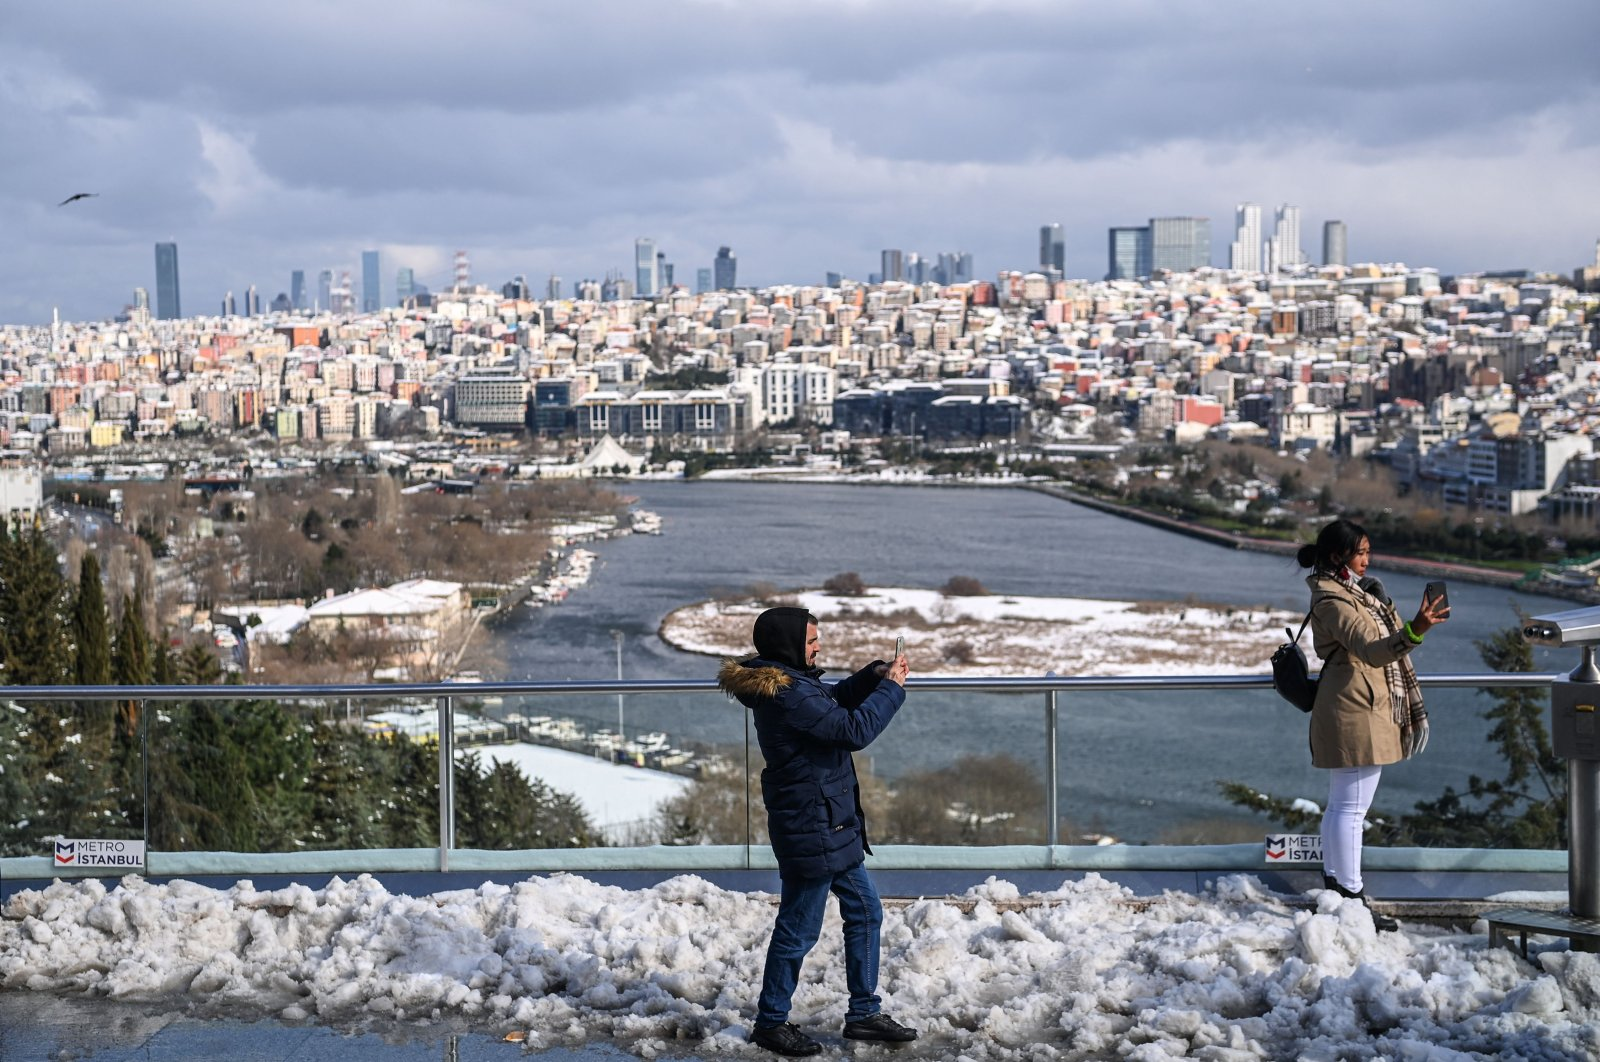 People take pictures at the Pierre Loti hill near the Eyüp Sultan neighborhood in Istanbul after a heavy snowfall, Turkey, Feb. 16, 2021. (AFP Photo)